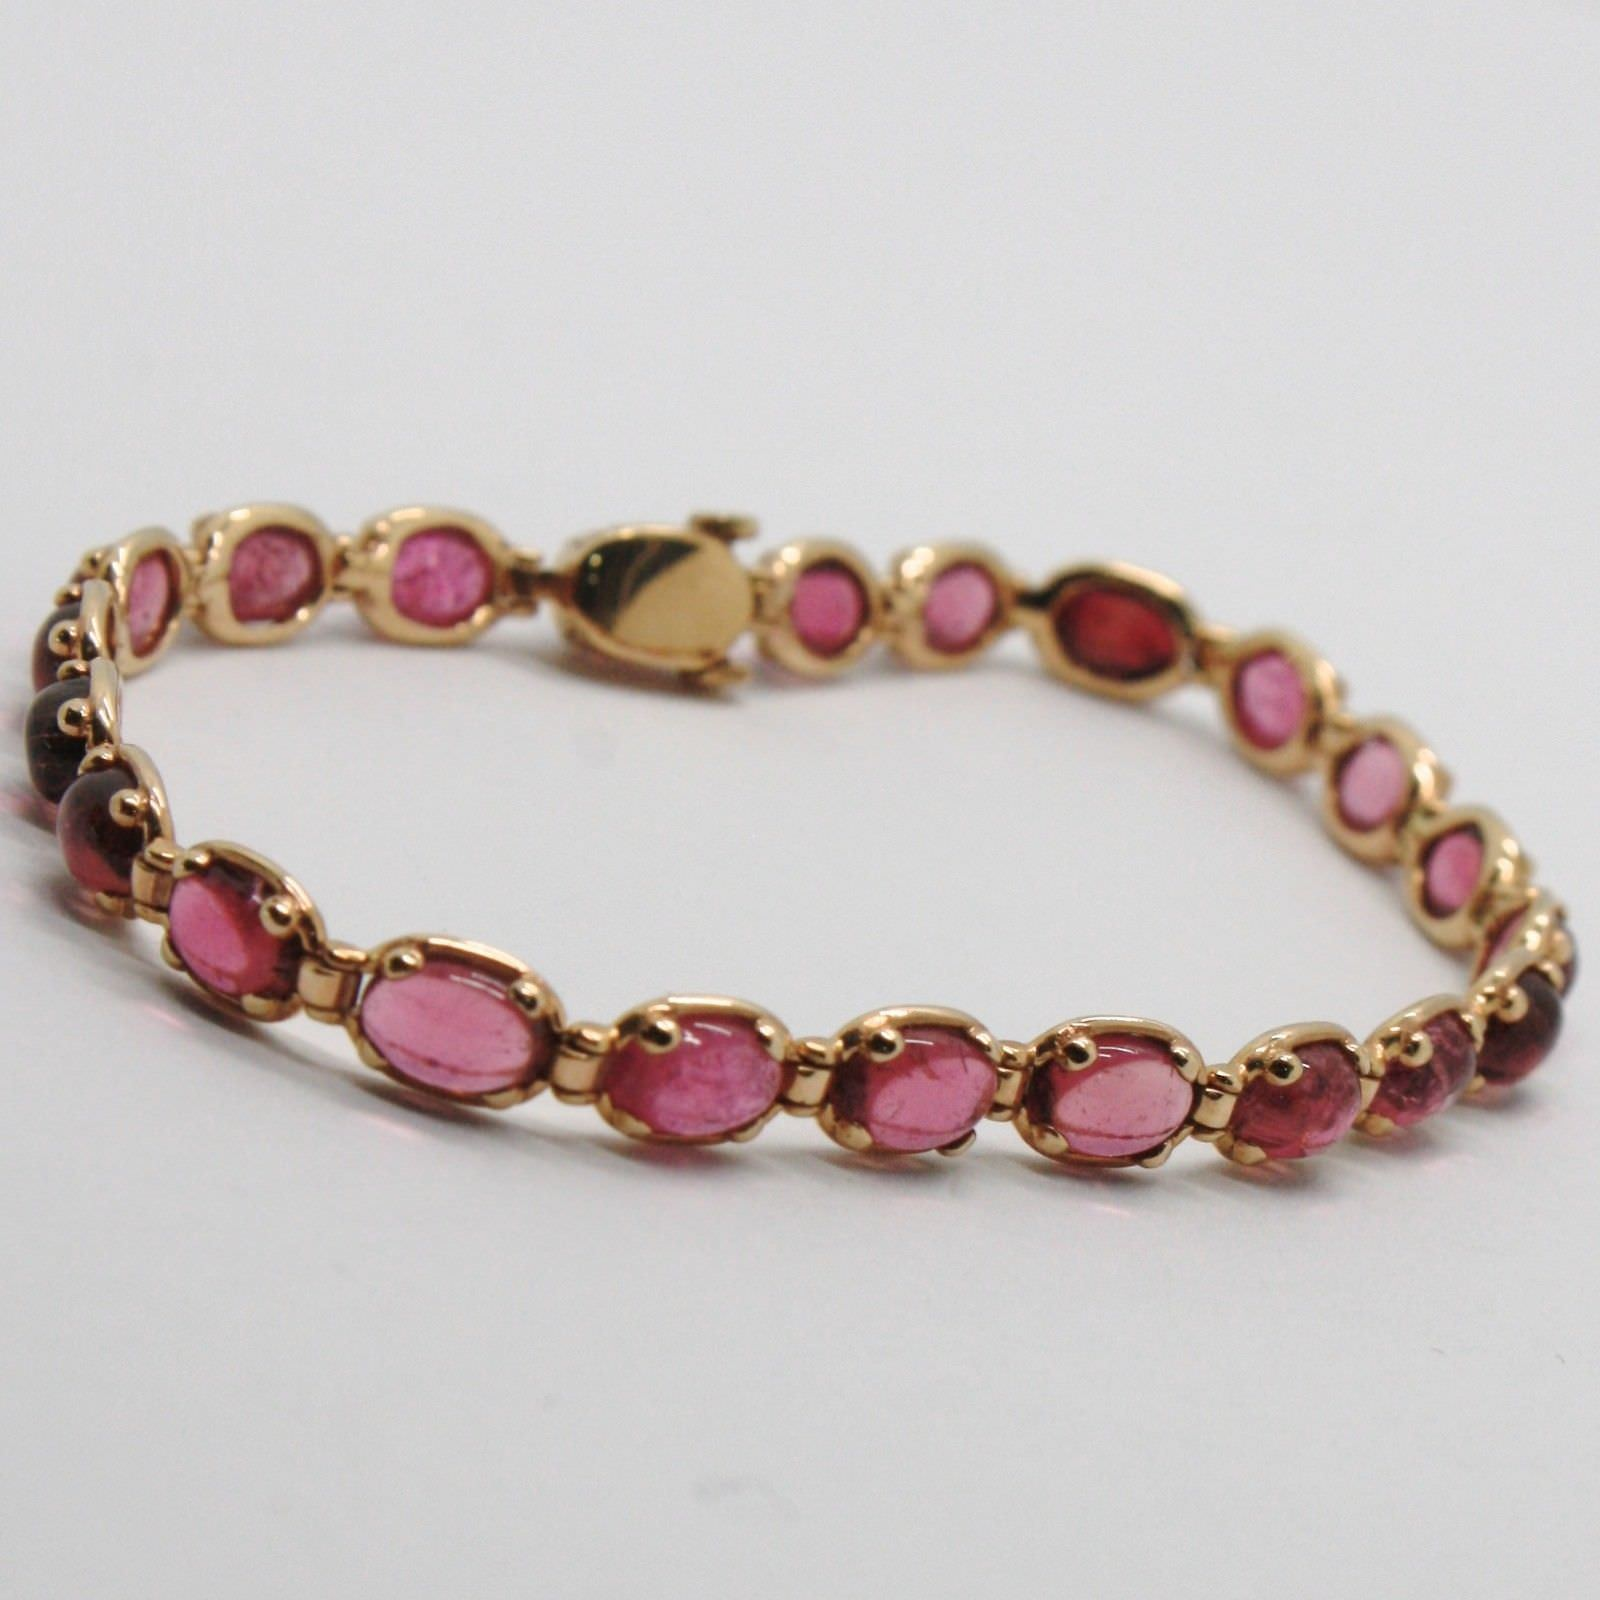 BRACELET GOLD PINK 9K TYPE TENNIS WITH TOURMALINE PINK, MADE IN ITALY